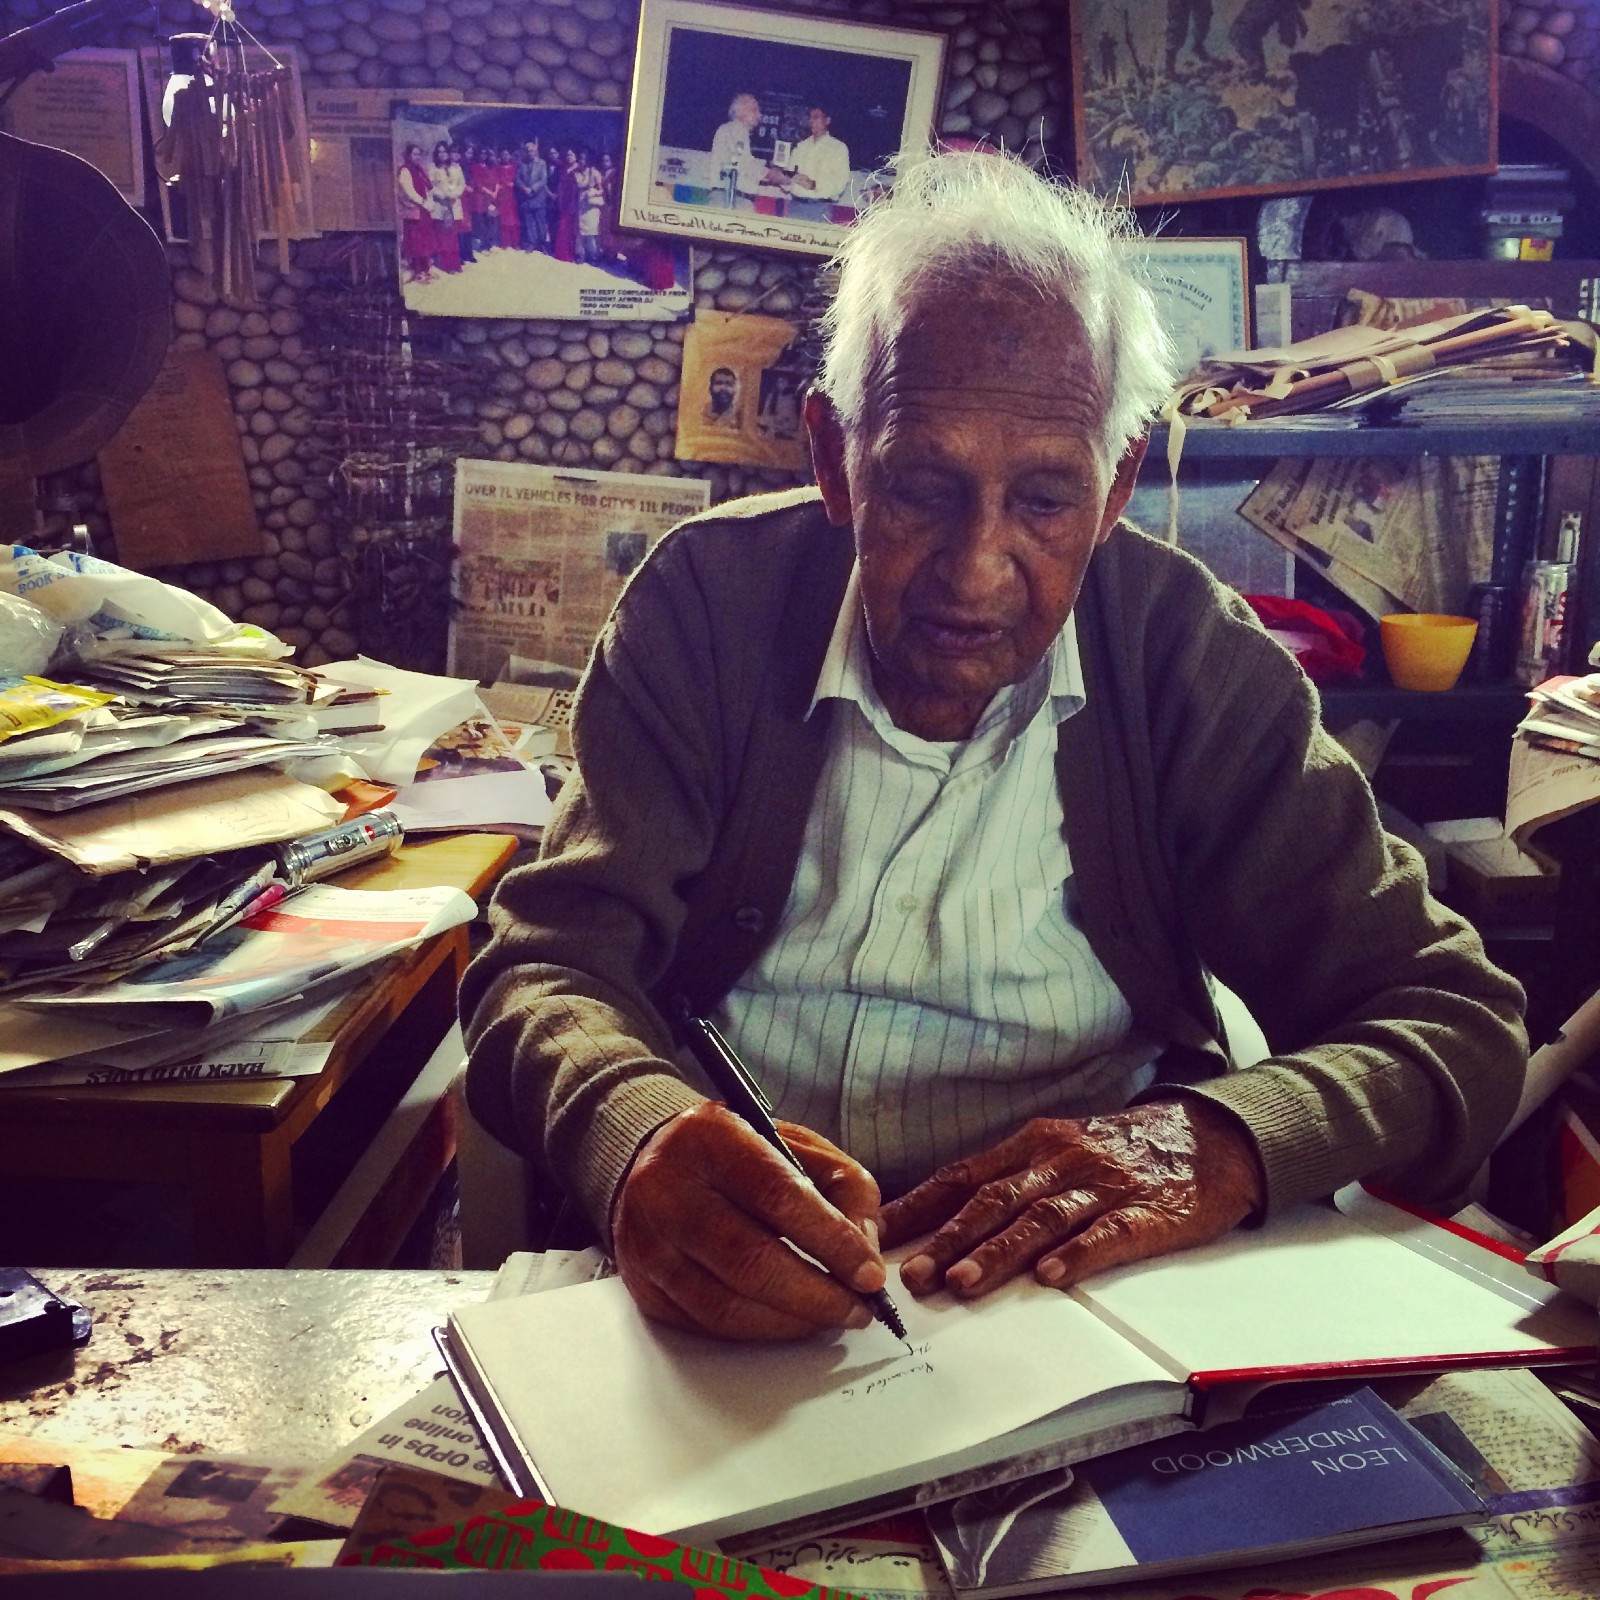 An elderly Indian man draws ina sketchbook surrounded by piles of paper, photographs and other ephemera